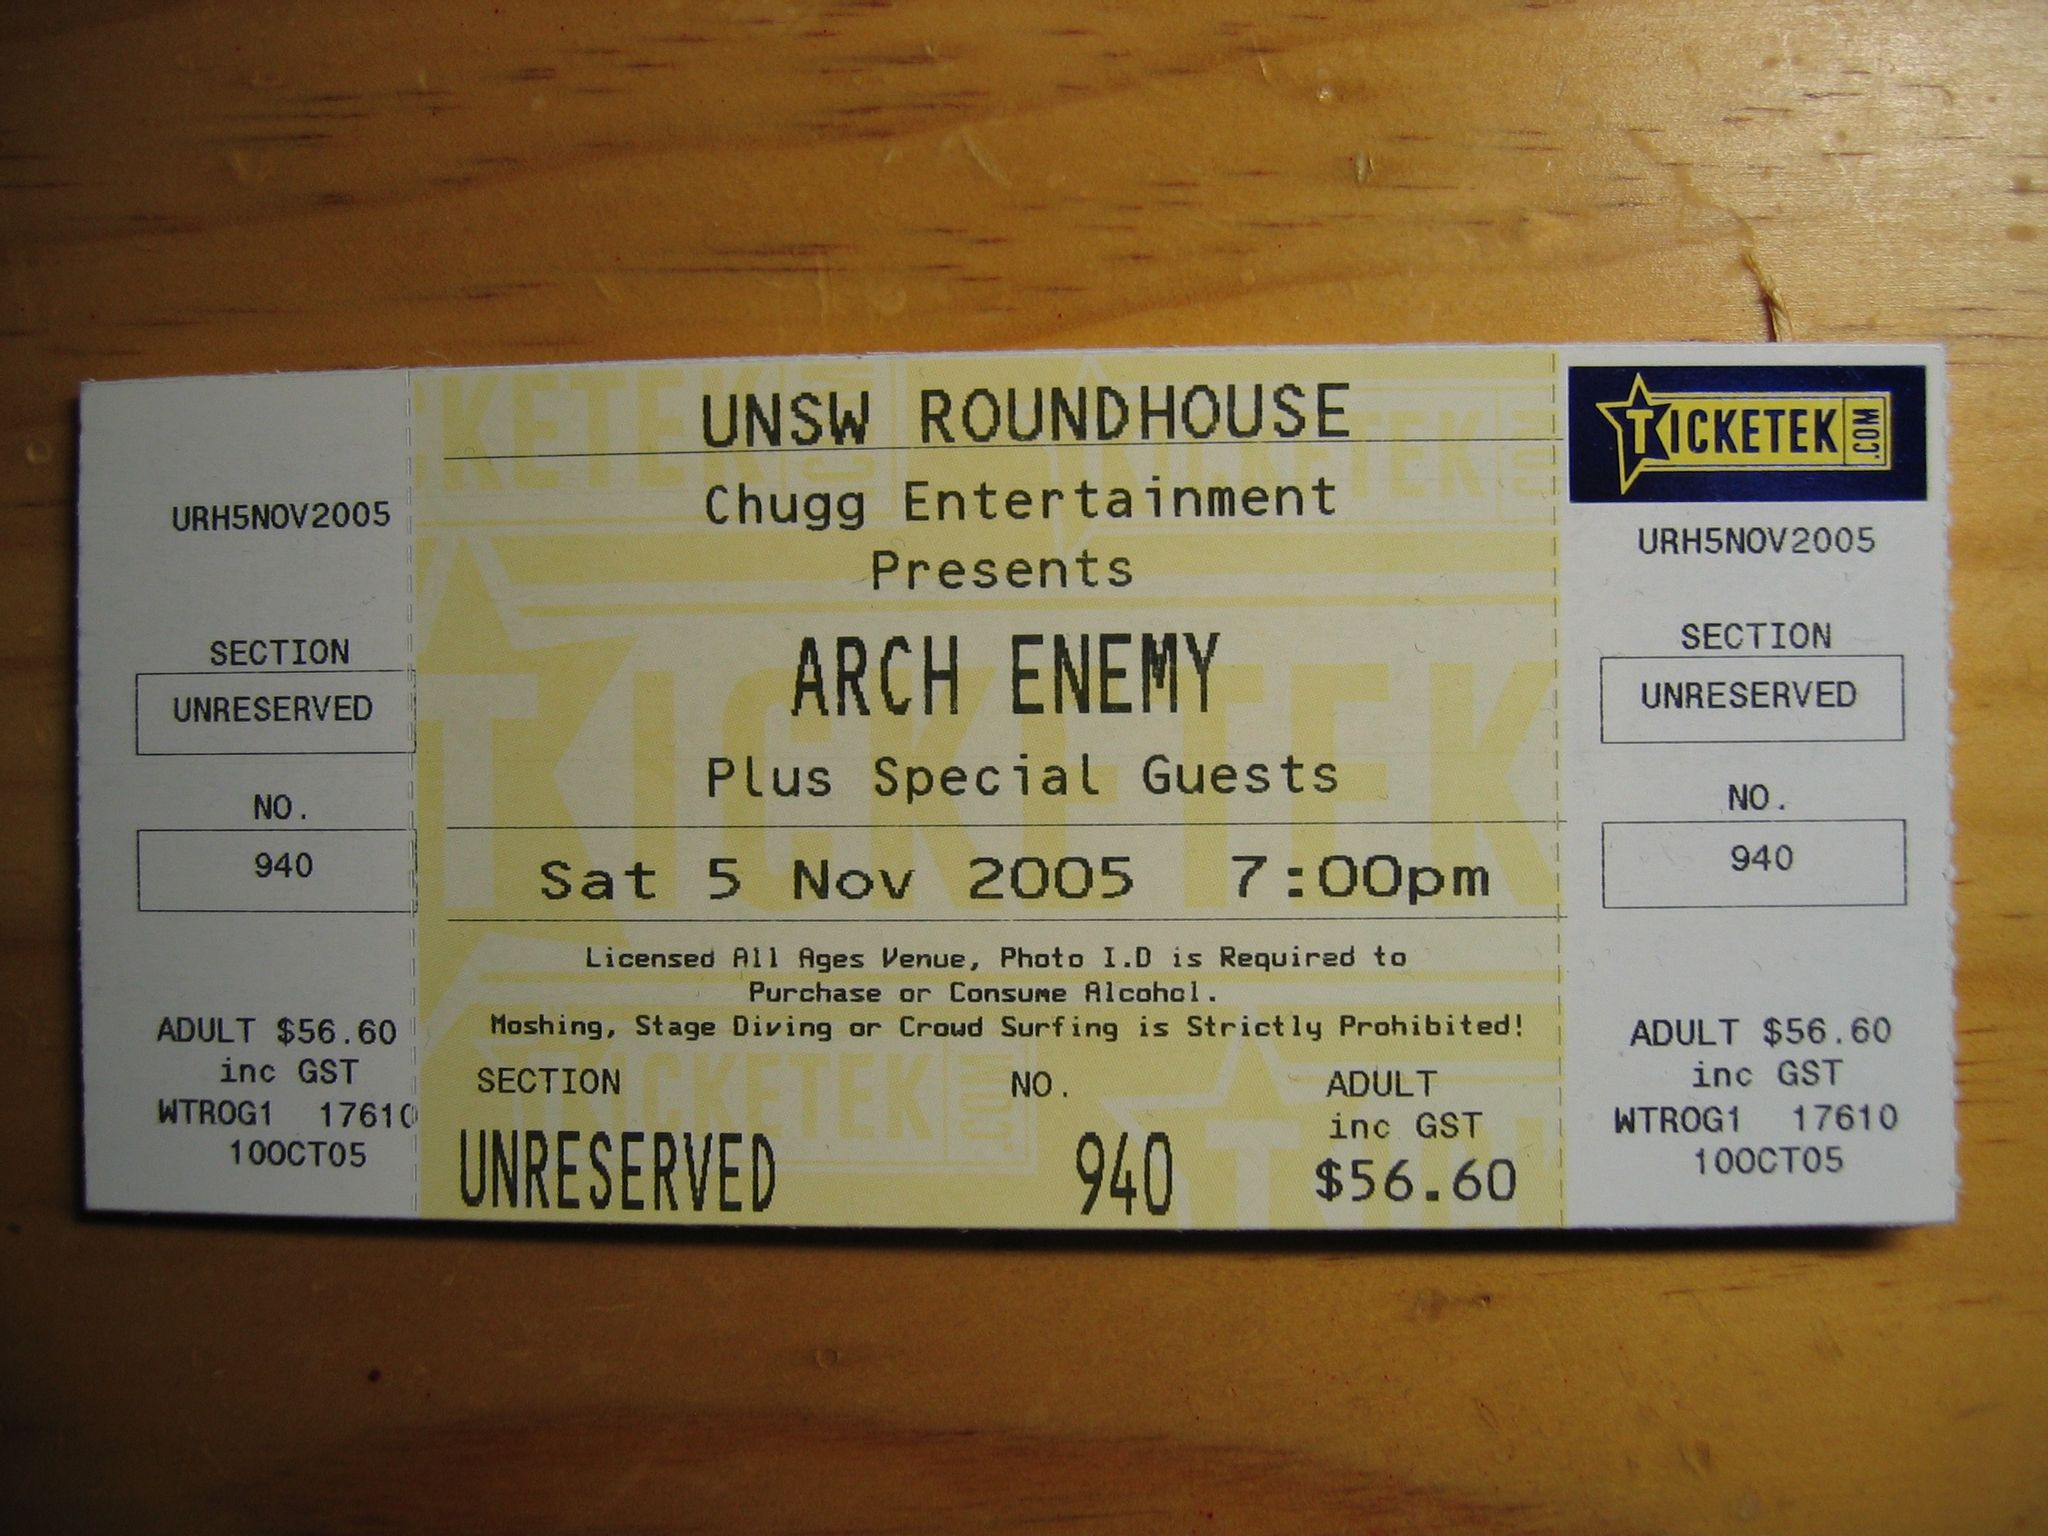 A photo of a ticket to a concert by the death metal band Arch Enemy.